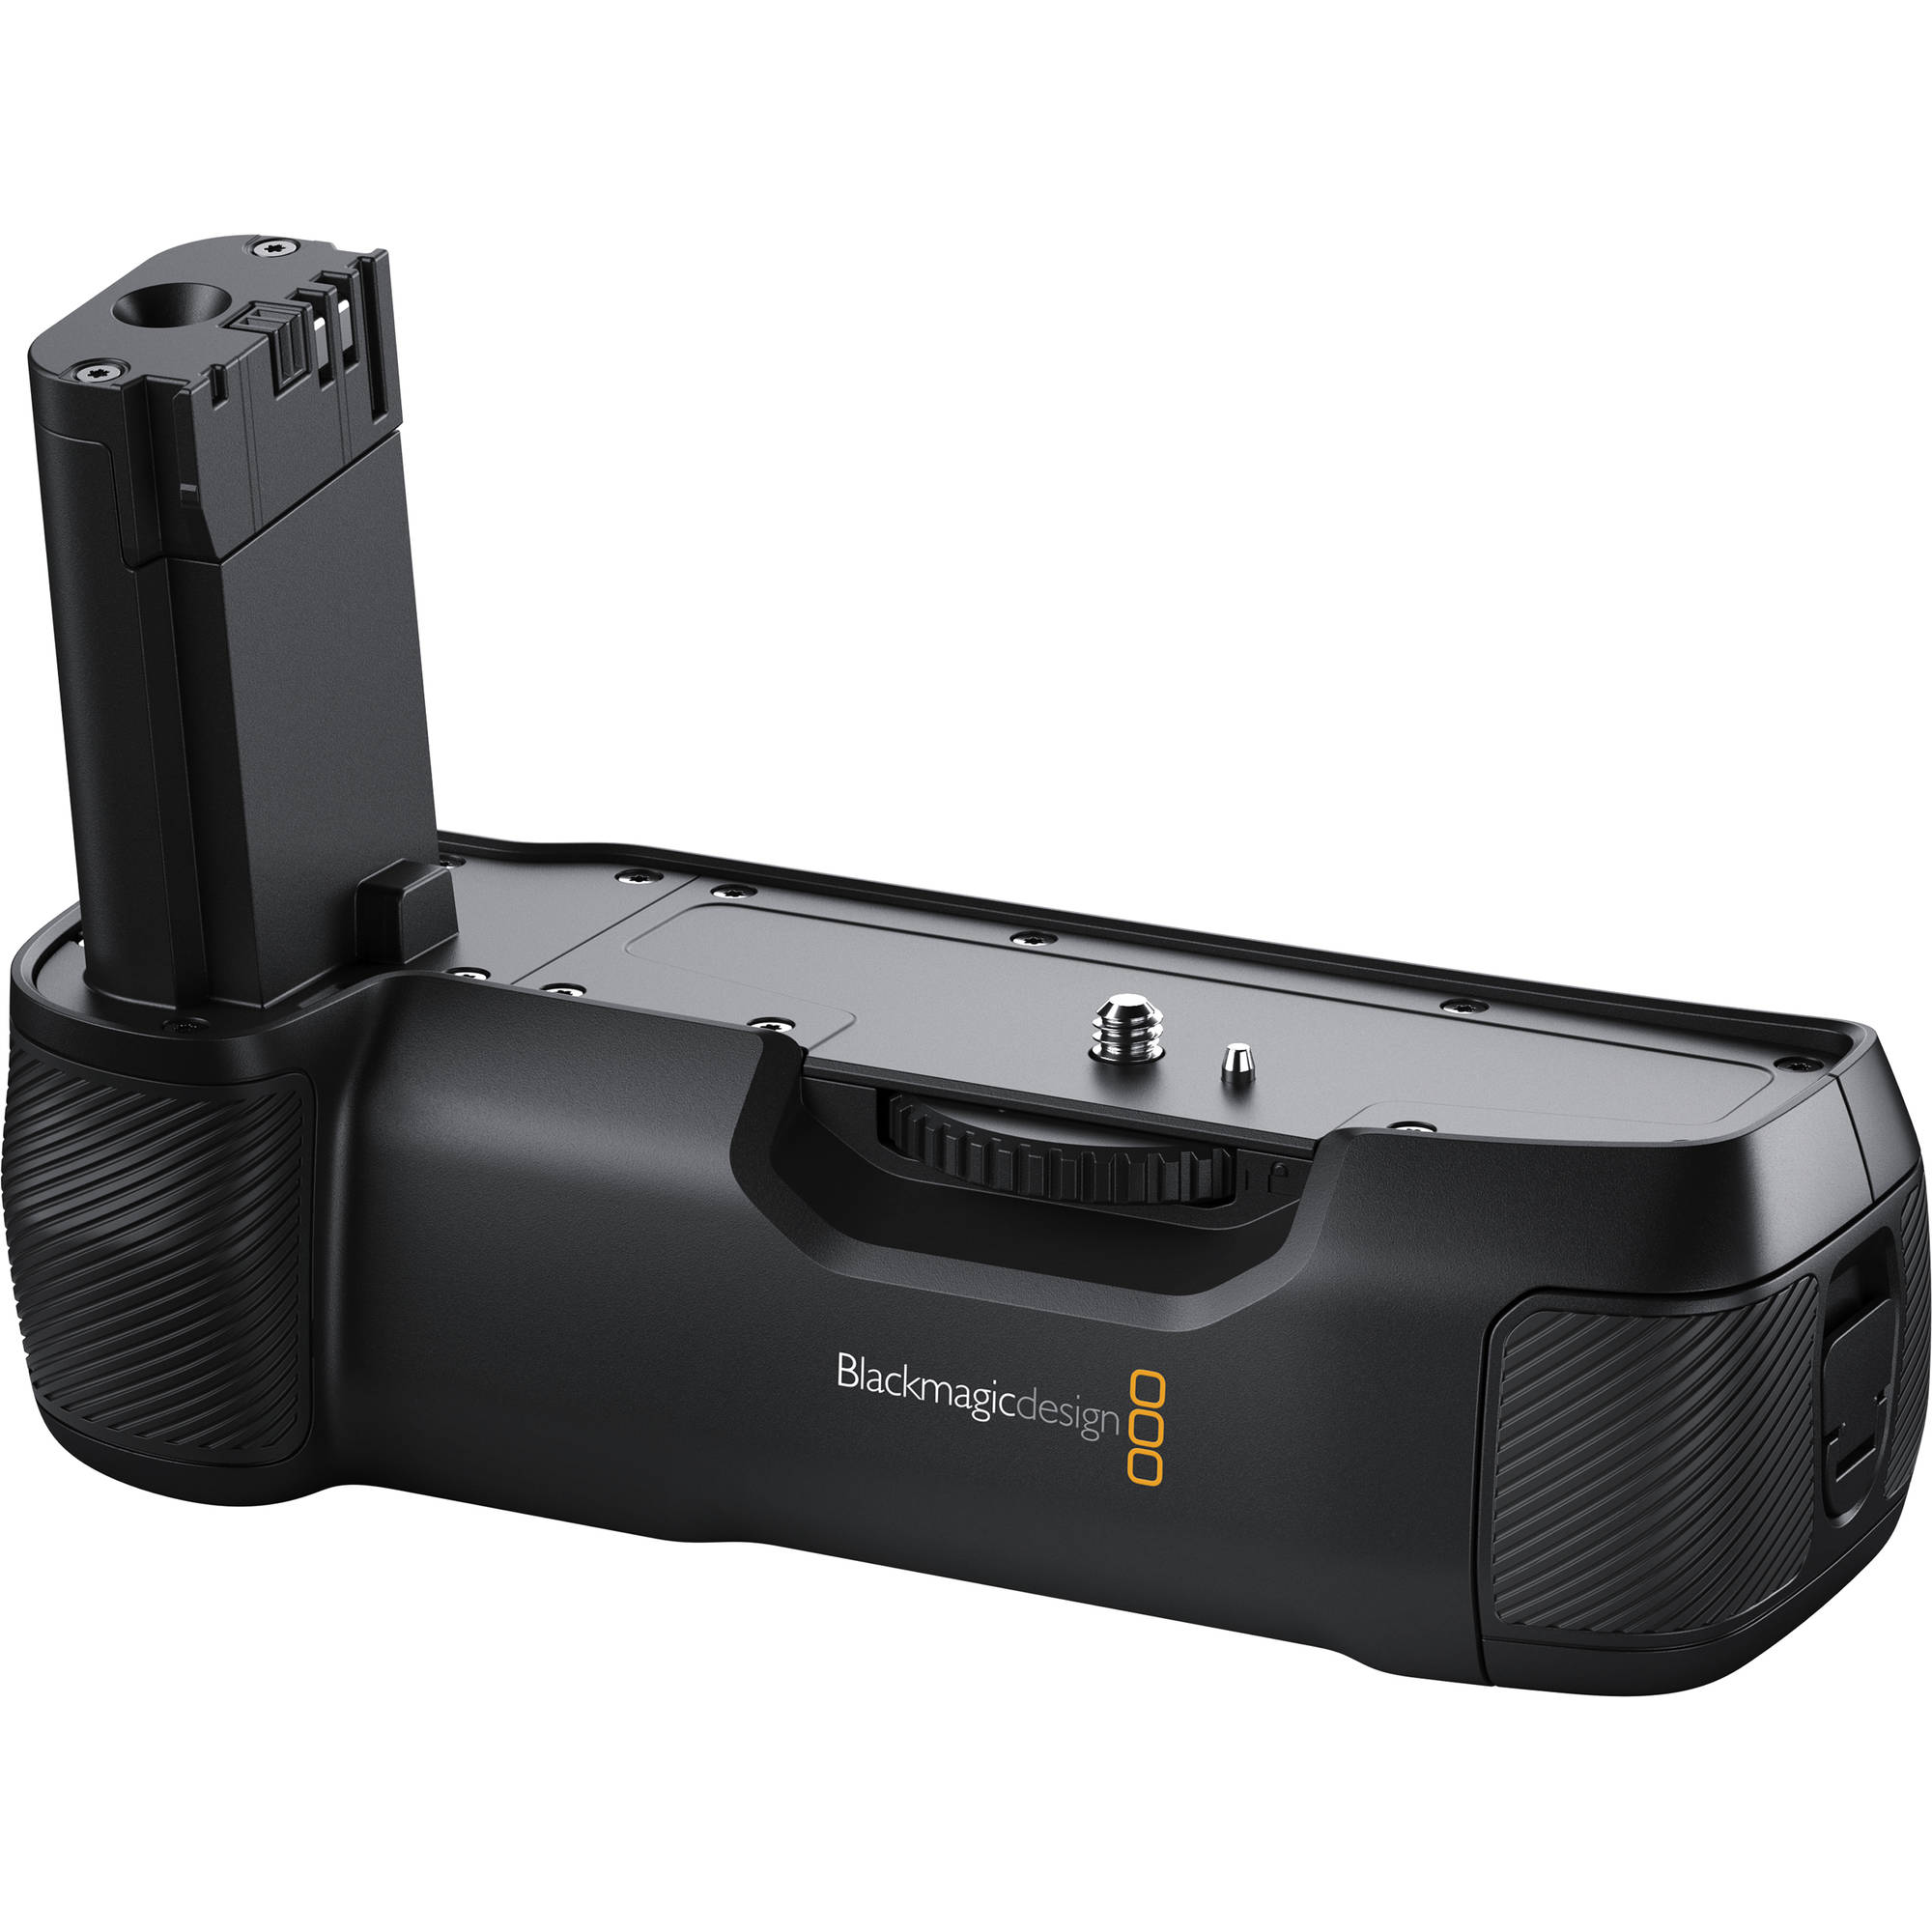 Blackmagic Design Pocket Cinema Camera 4K/6K Battery Grip